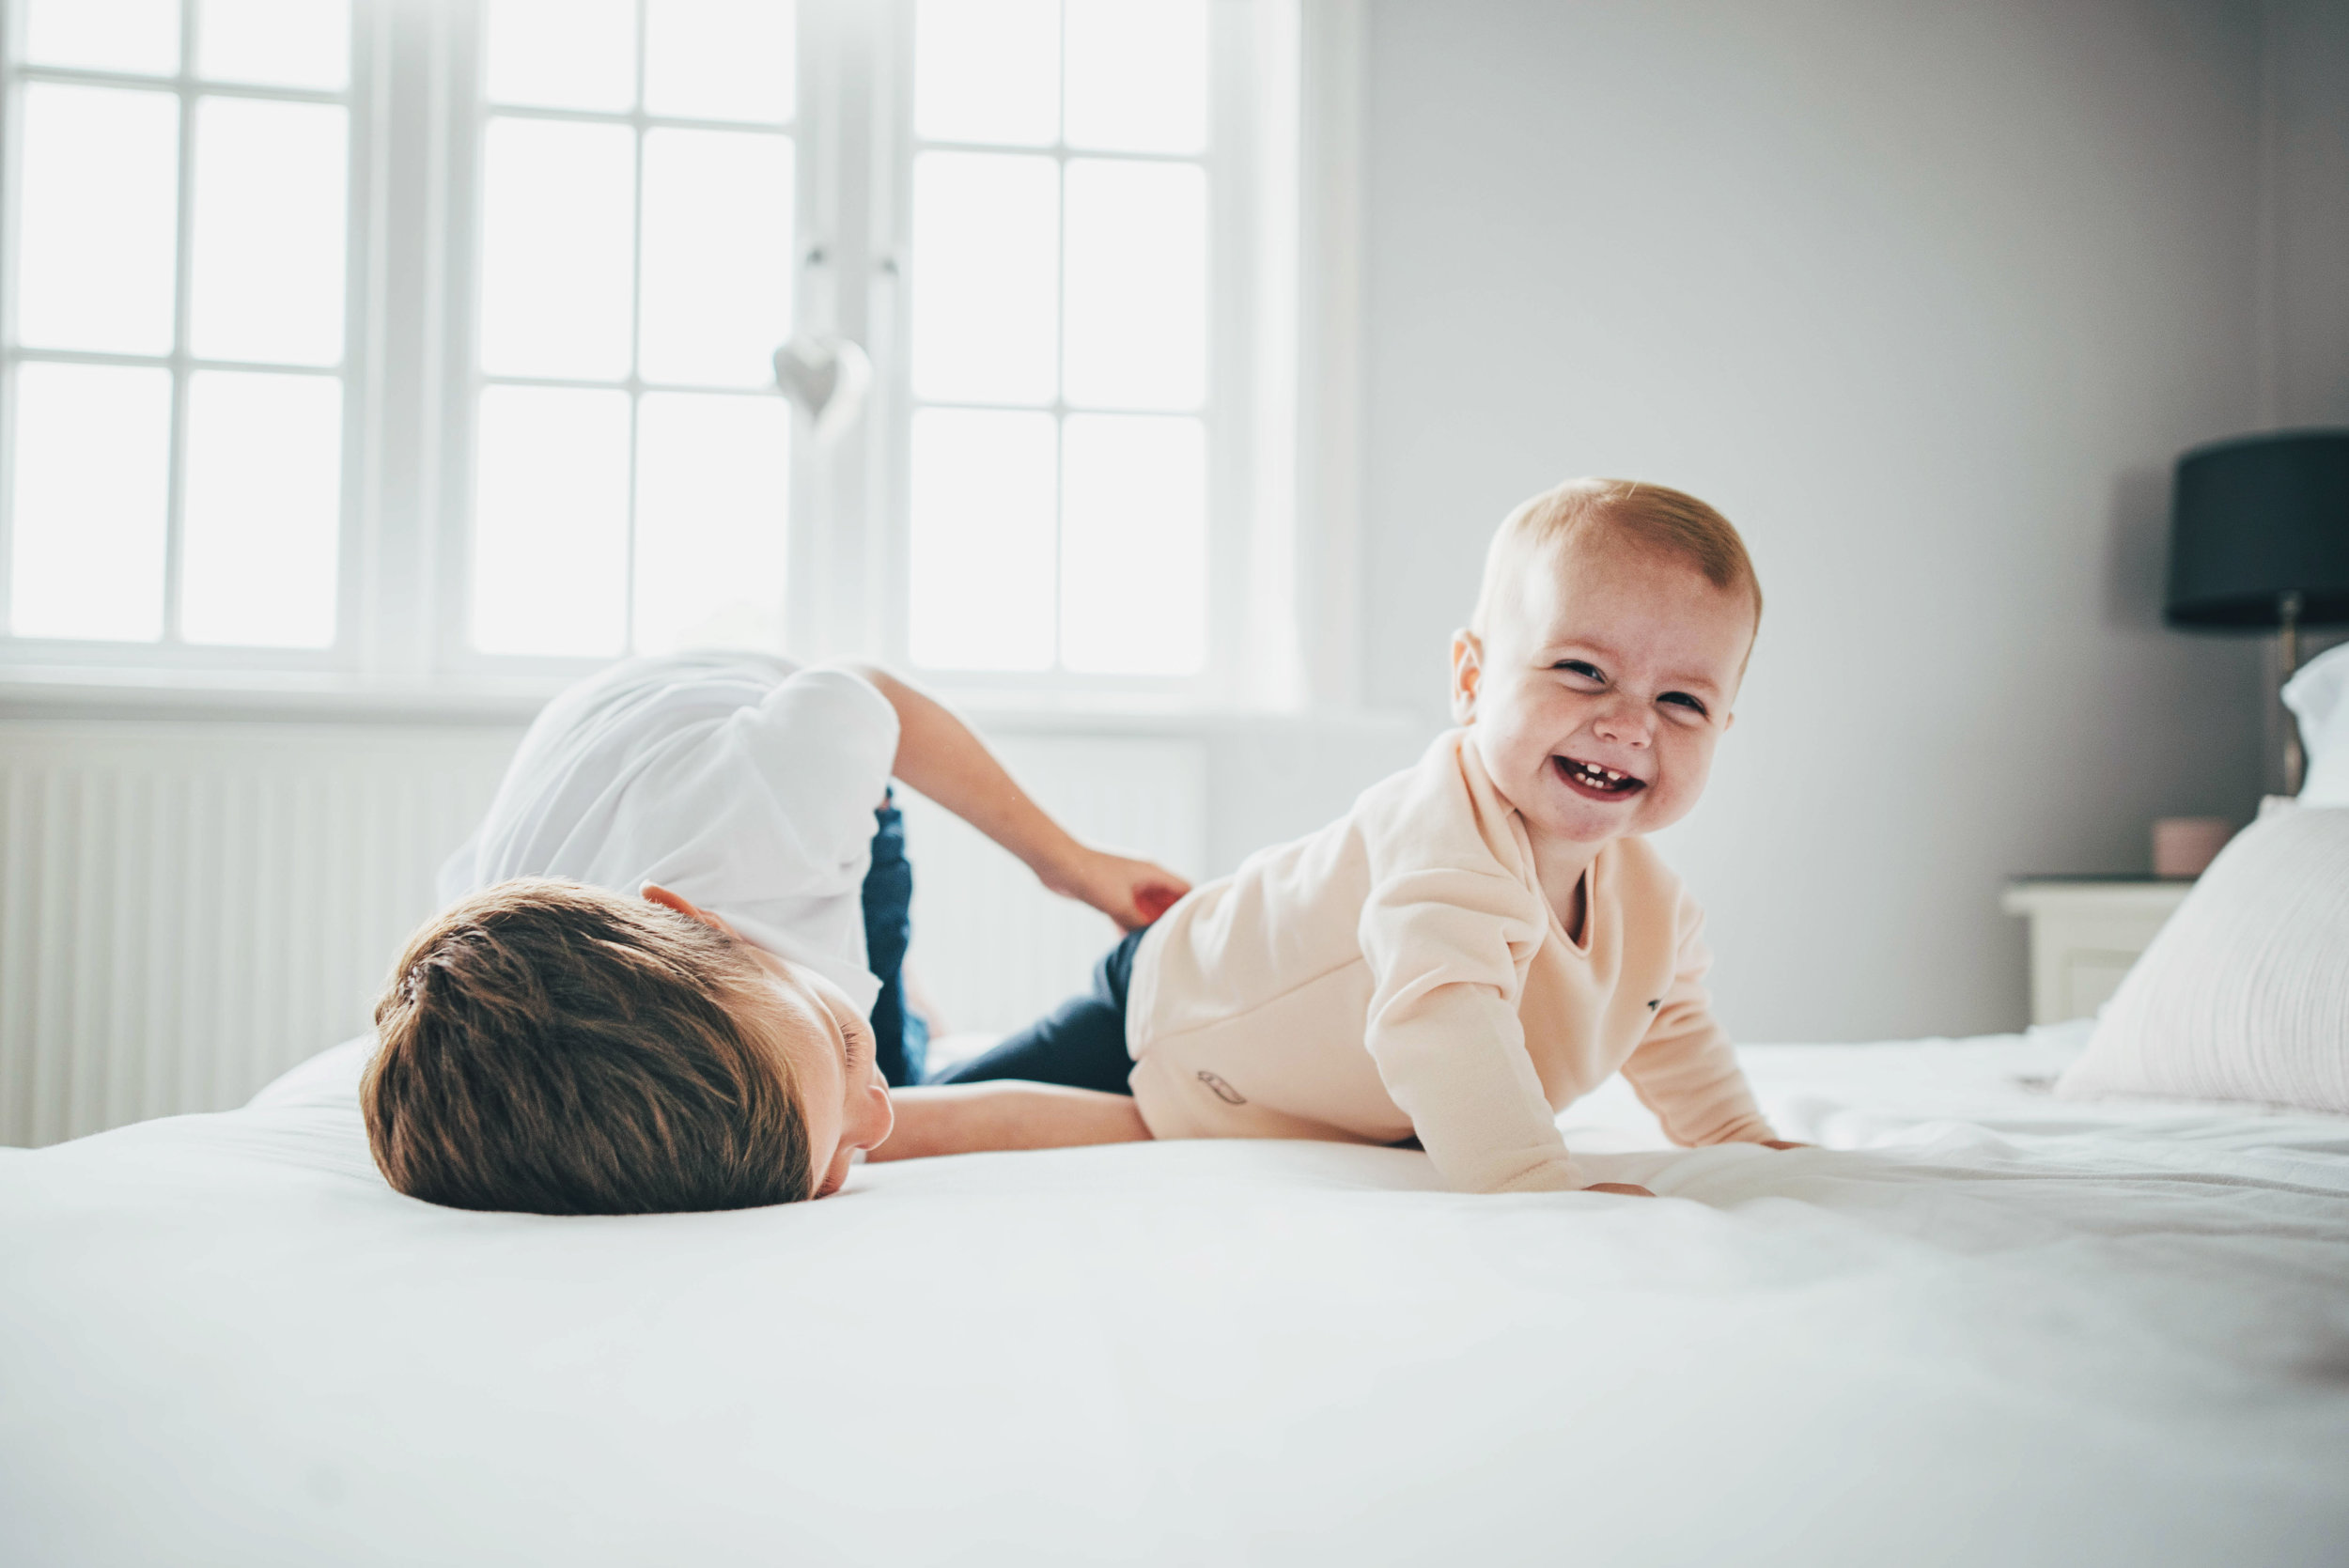 Brother and sister play on bed Essex Documentary Portrait Photographer